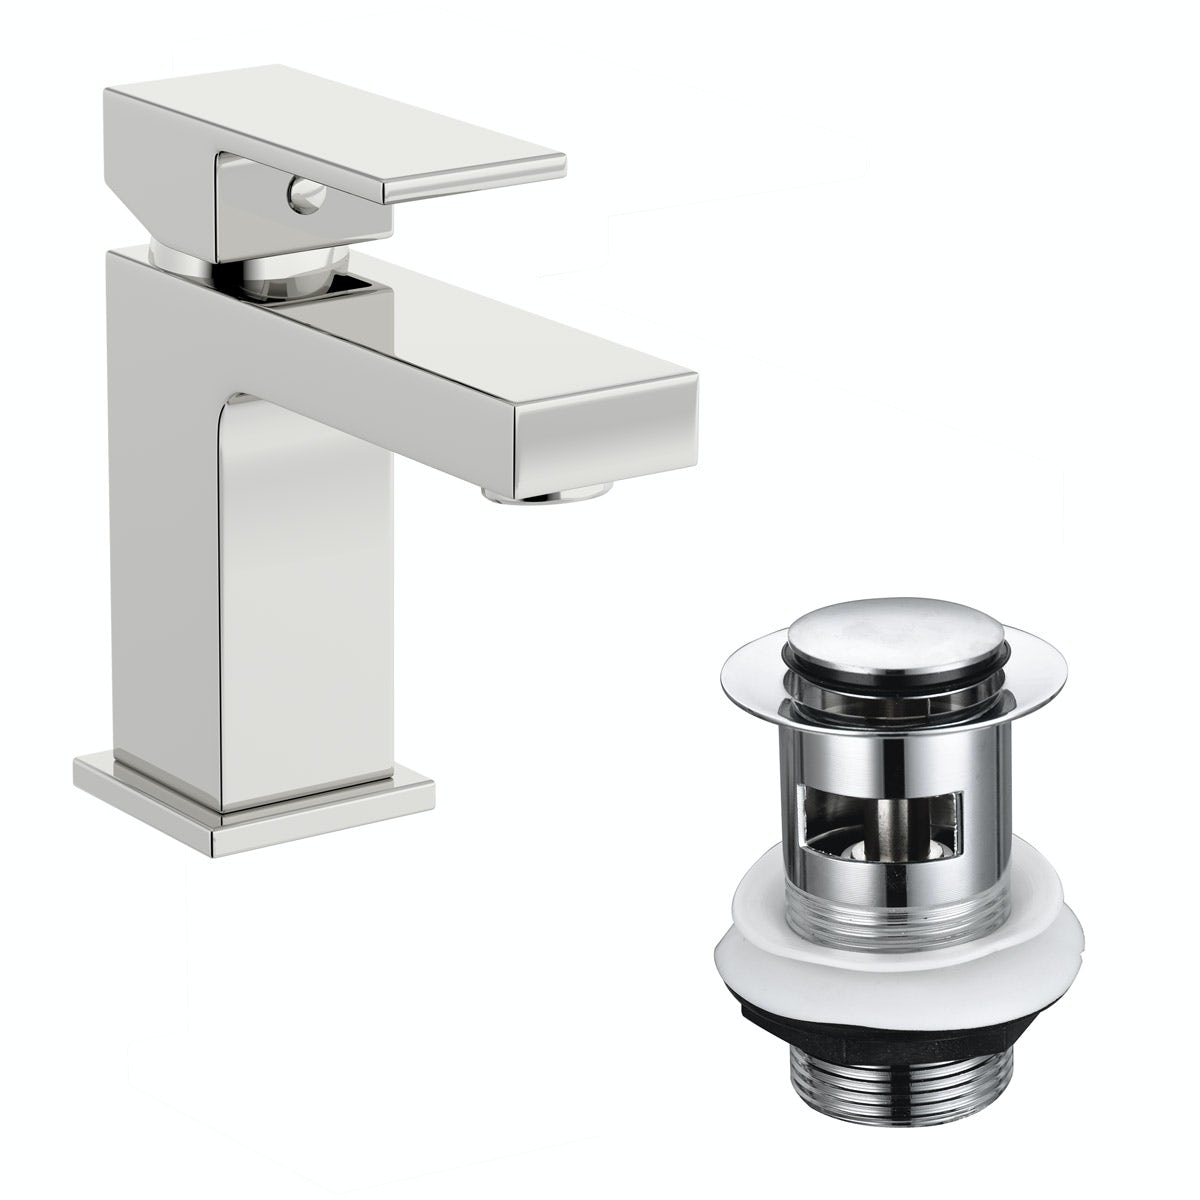 Mode Cooper basin mixer tap with click clack waste